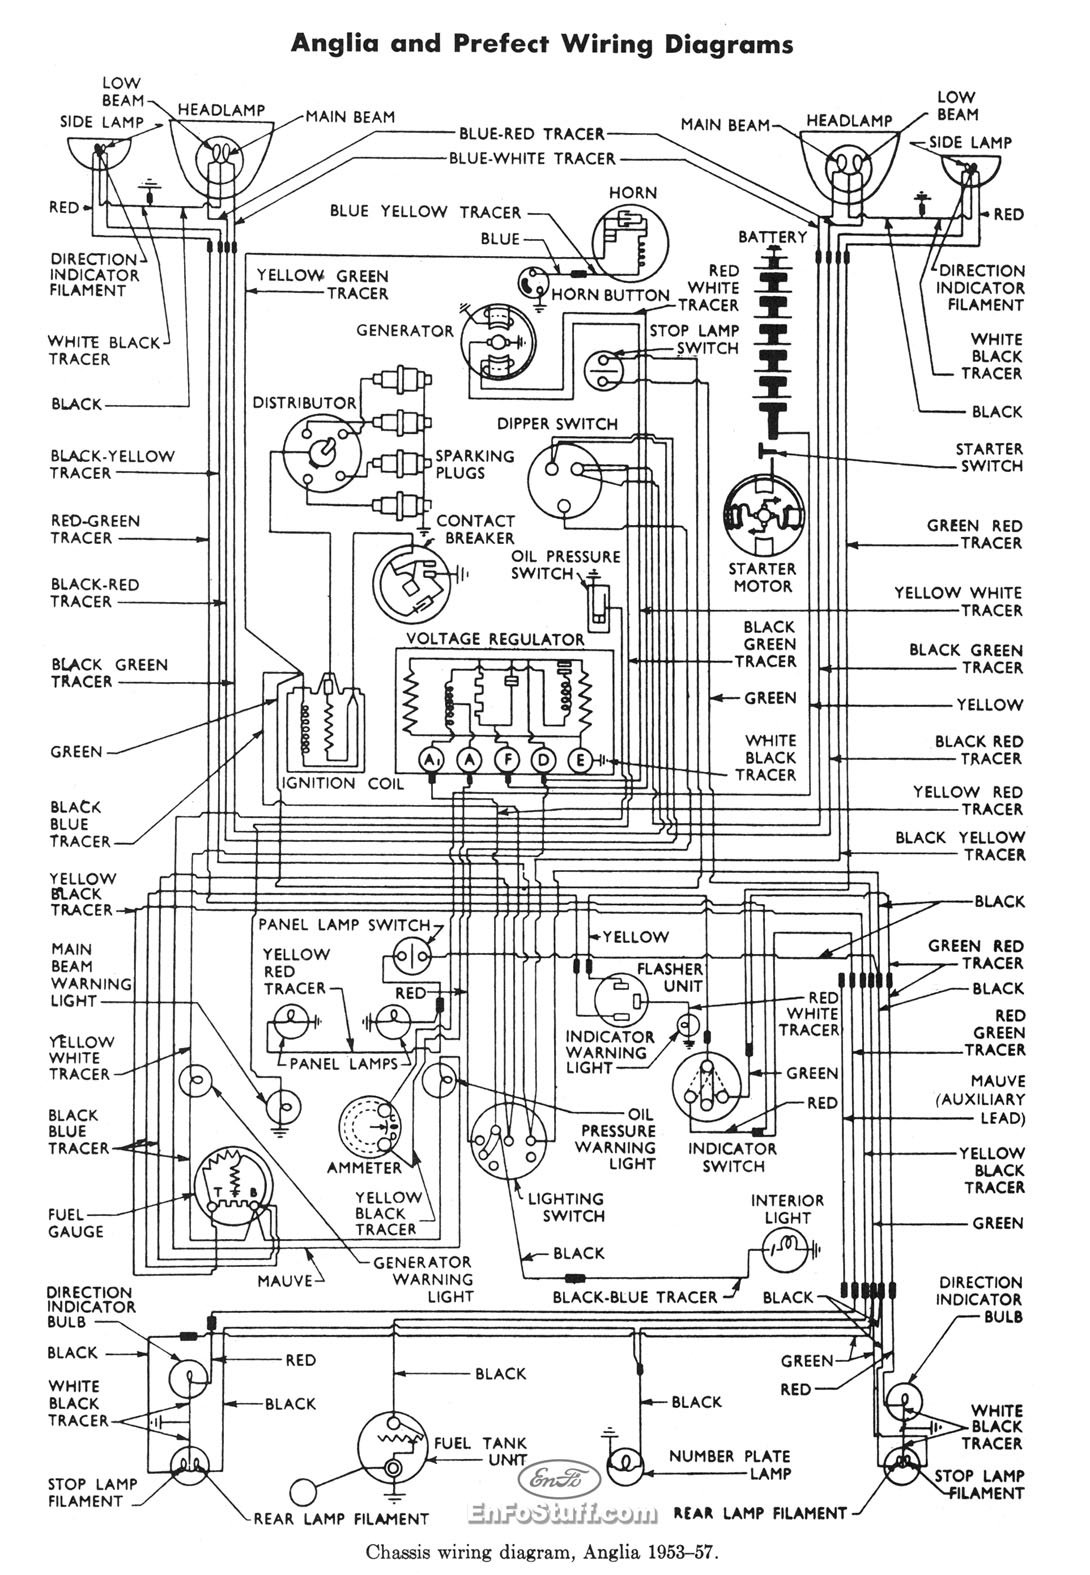 1953 Ford Wiring Diagram 24 Images 12 Volt Solenoid 1952 F1 Help Truck Enthusiasts Anglia 57 For